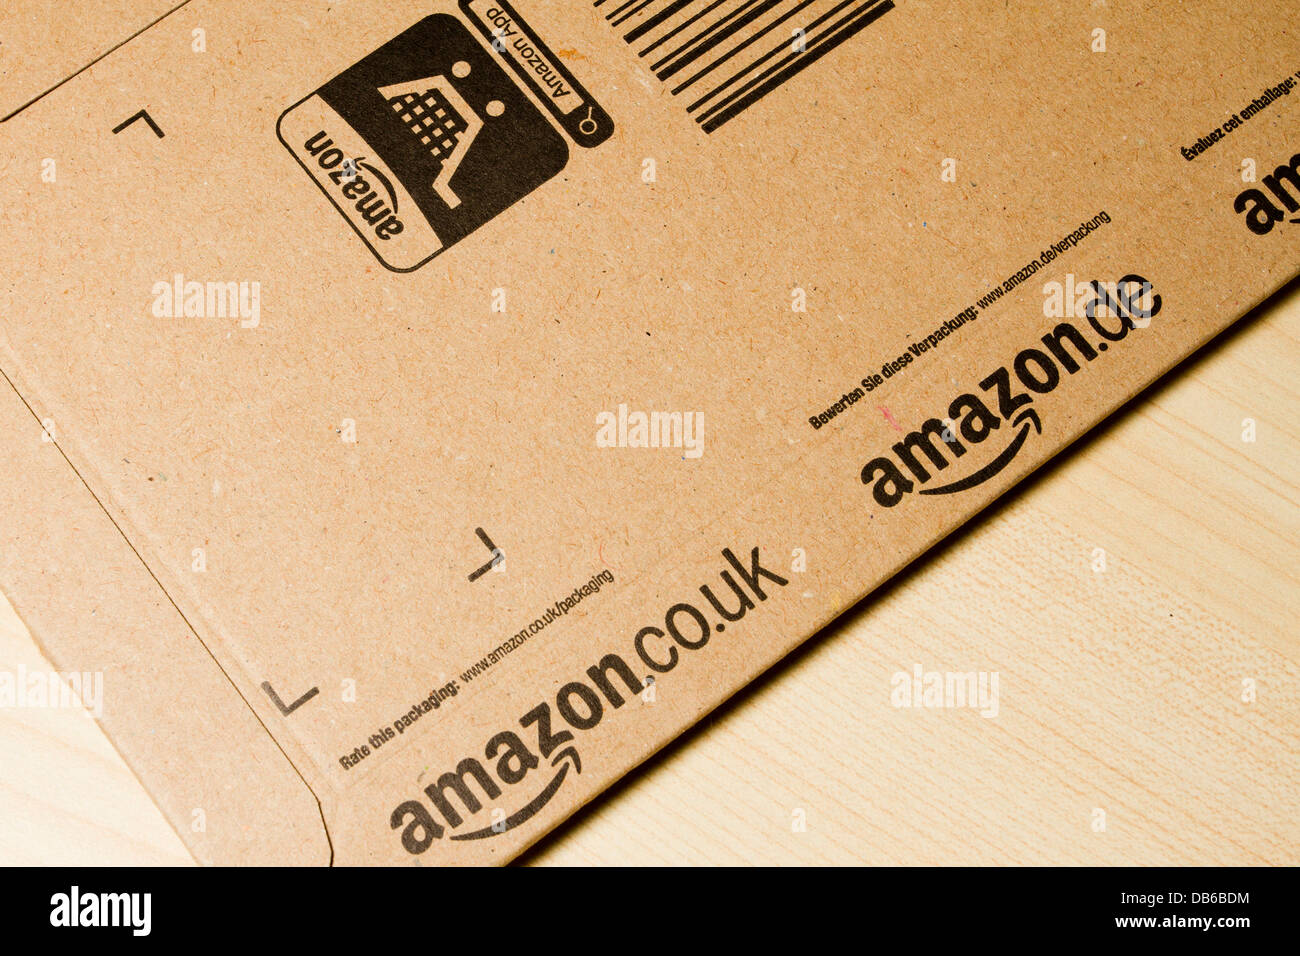 Amazon delivery, card envelope, England, UK - Stock Image